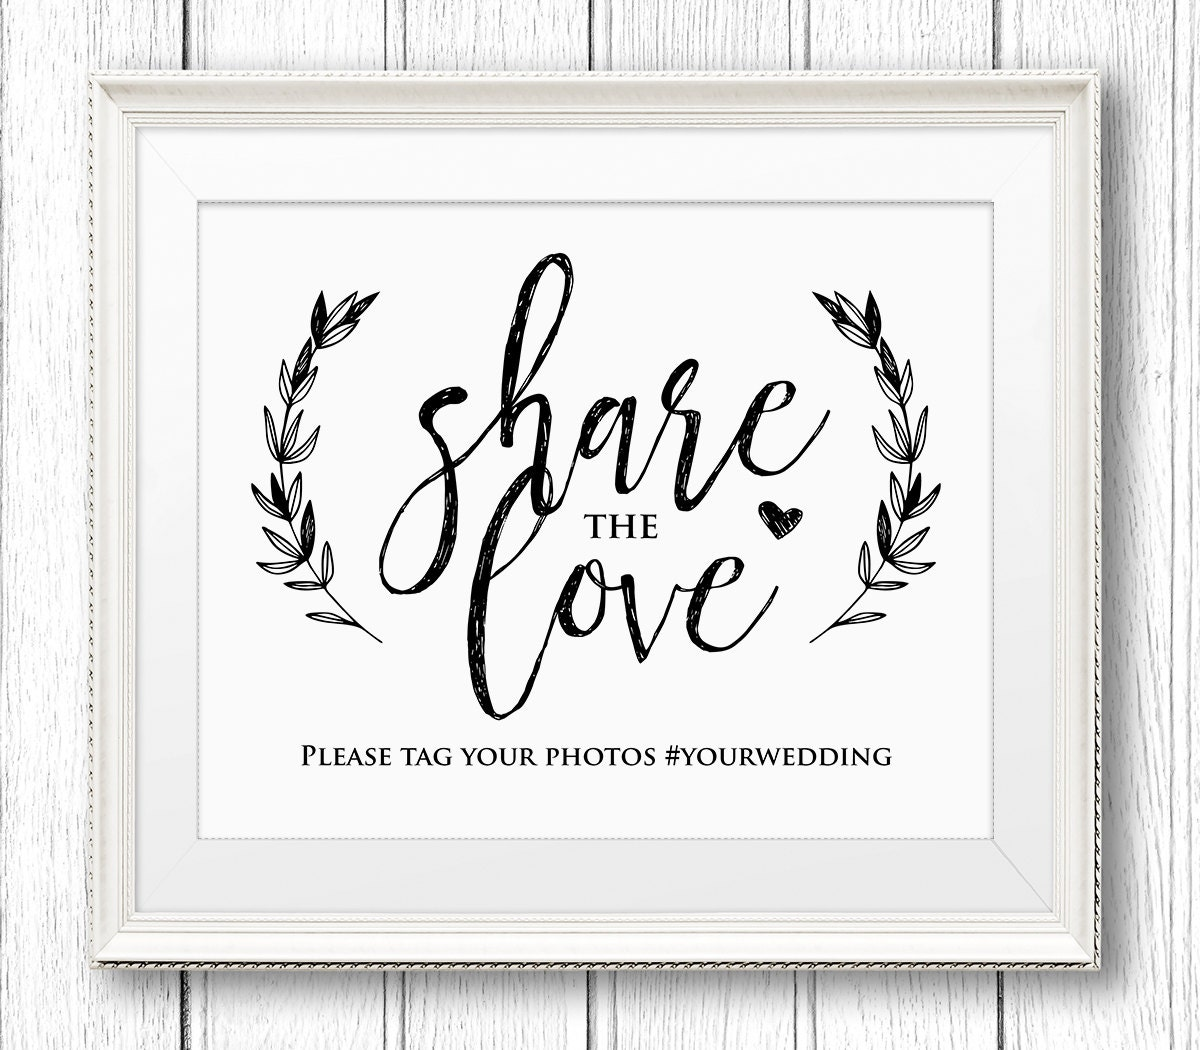 Free Wedding Sign Templates: Wedding Hashtag Sign Share The Love Reception Sign Rustic